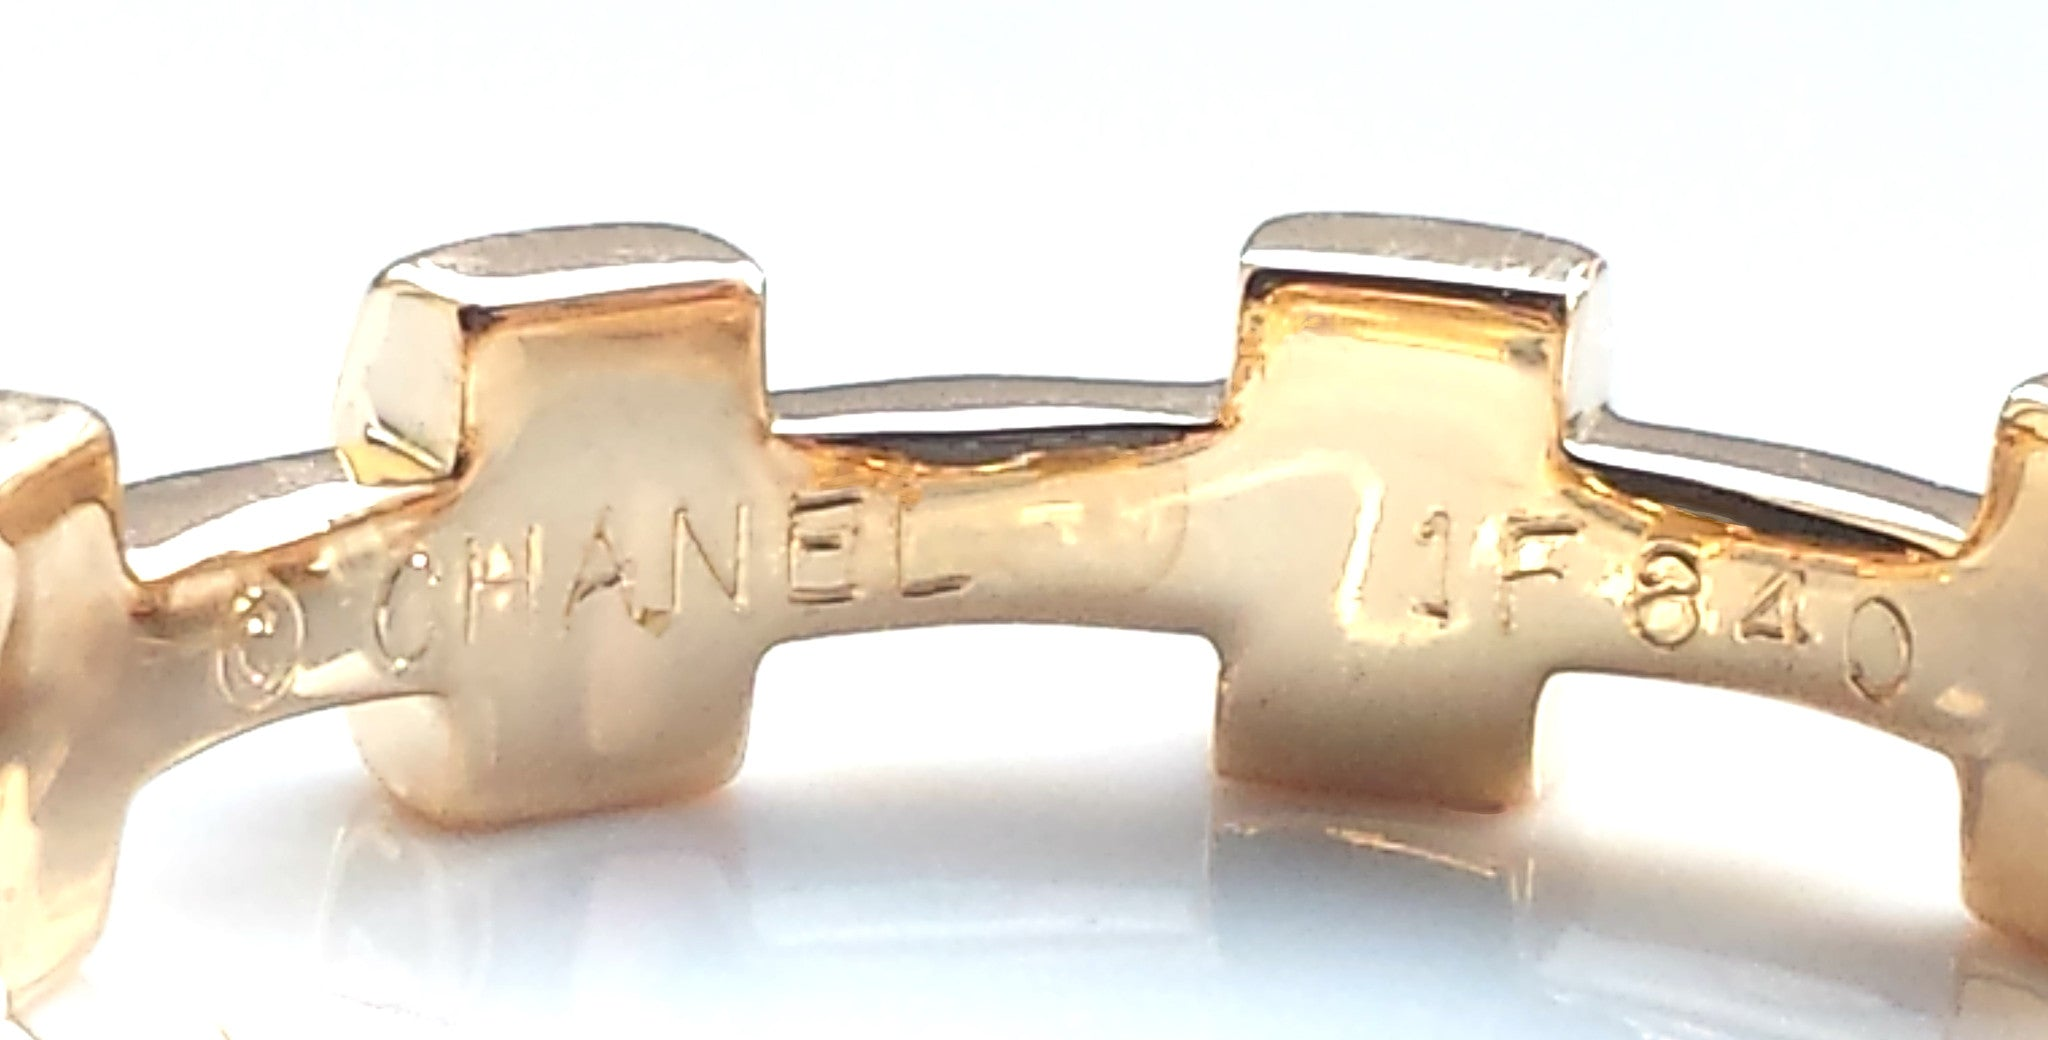 Vintage Chanel 1980s Palissade Ring in 18k Yellow Gold, Size 54 (UK N)